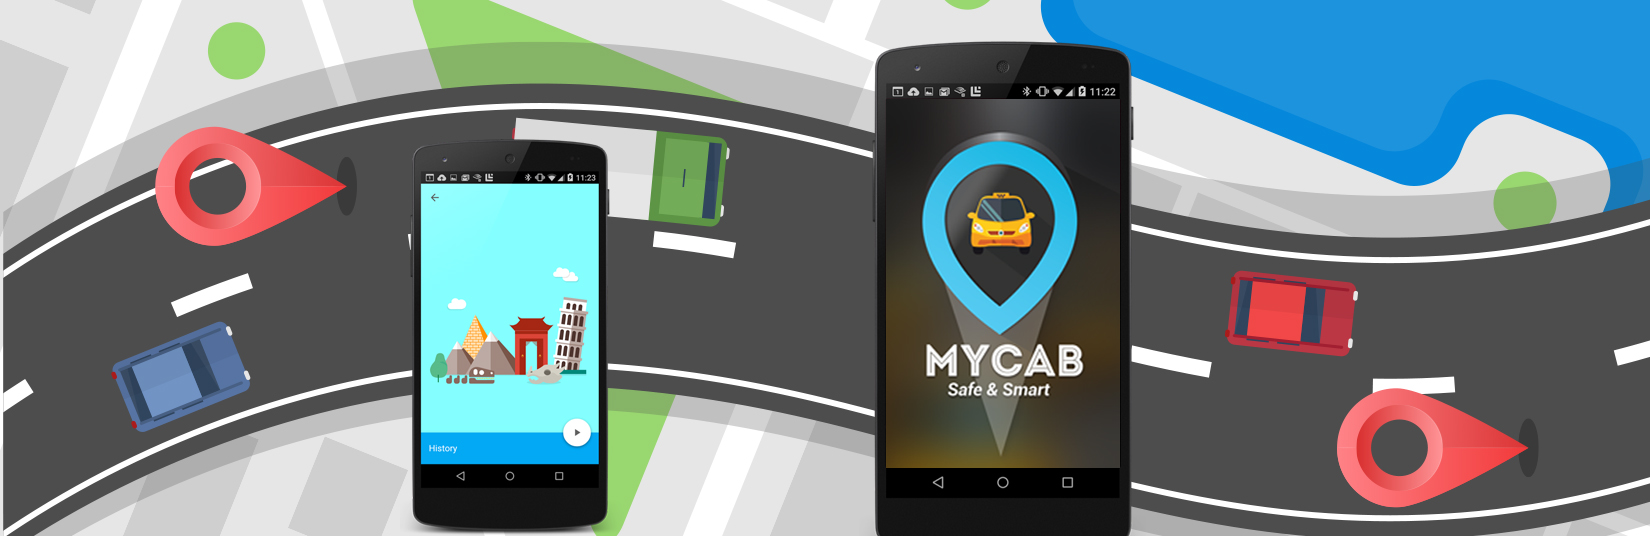 My Cab Mobile Application